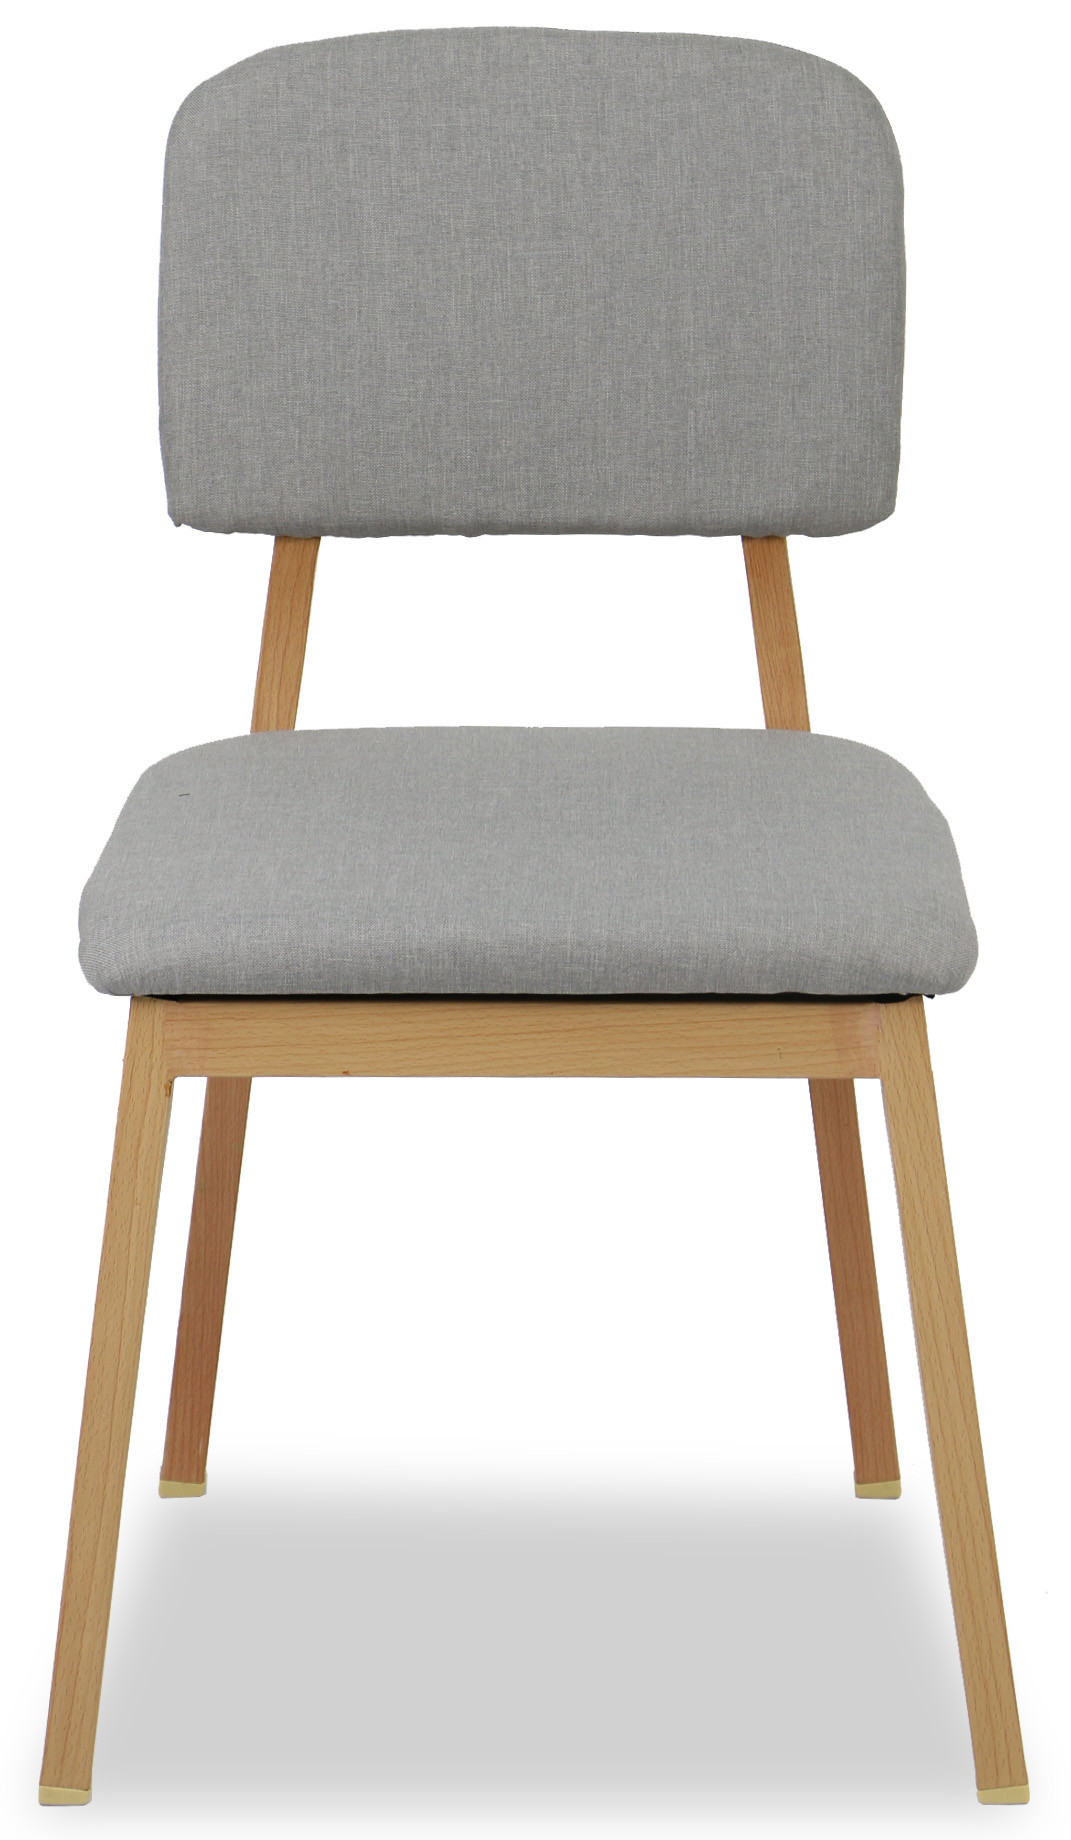 Zeslier Dining Chair Light Grey Furniture amp Home D233cor  : sxb1 from www.fortytwo.sg size 1071 x 1840 jpeg 257kB